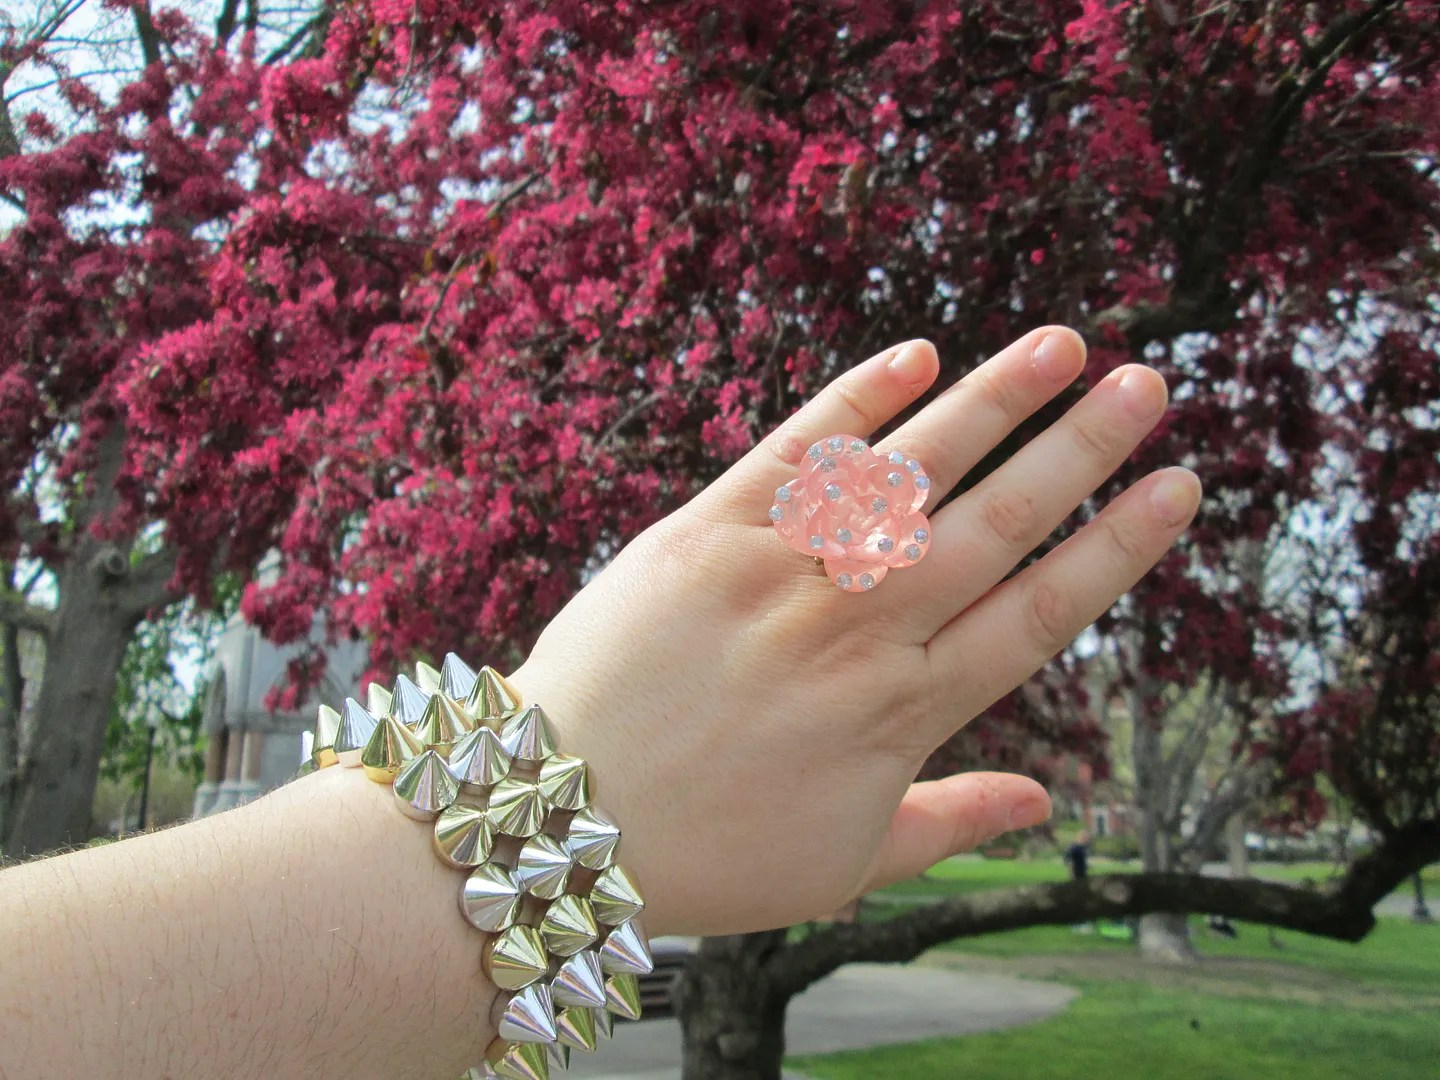 hand with pink rose statement ring and gold and silver spike bracelet in front of pink tree